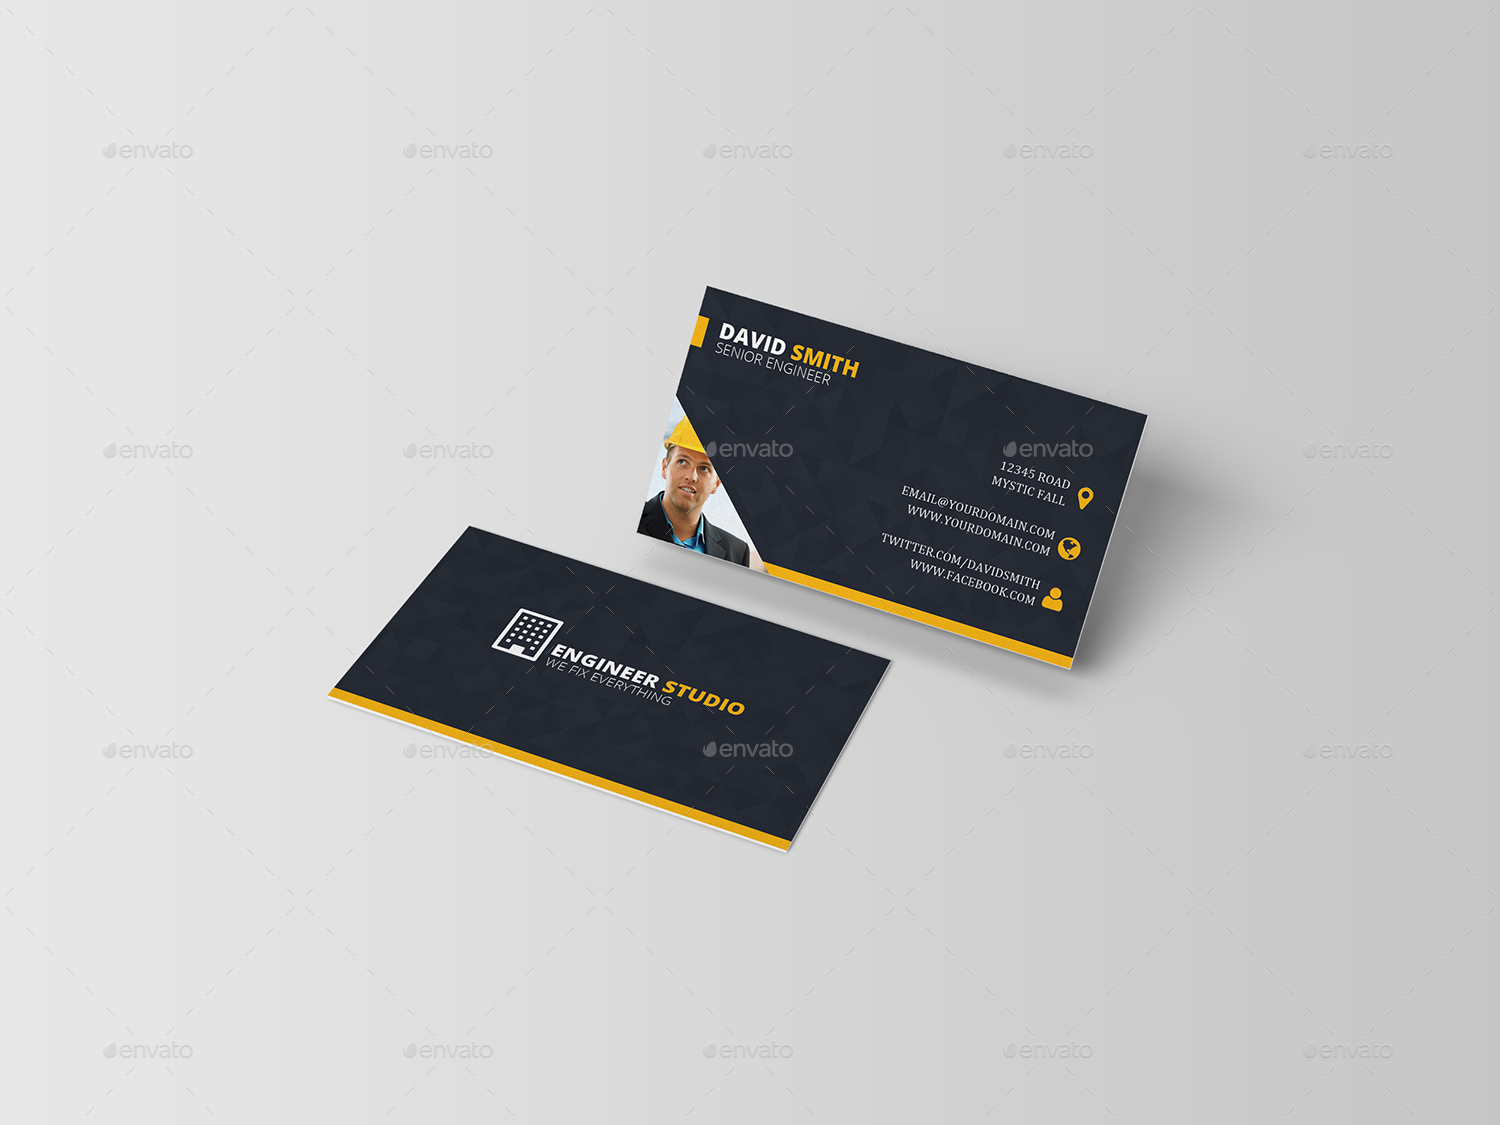 engineer business card industry specific business cards 01_previewjpg - Engineer Business Card